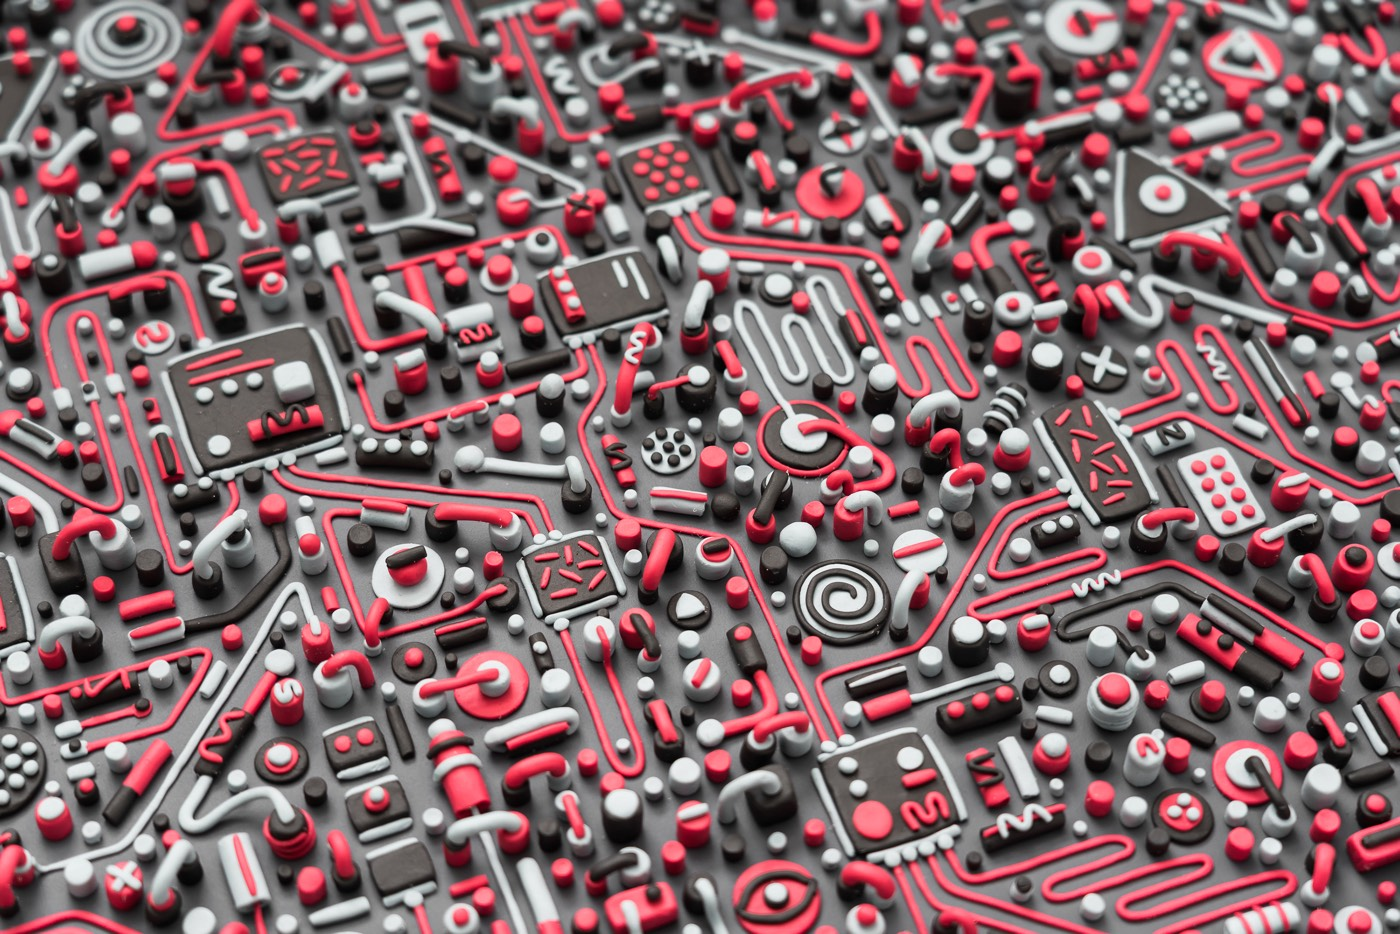 Intricate Circuit Board Model Sculpted From Plasticine Clay Circuitboard